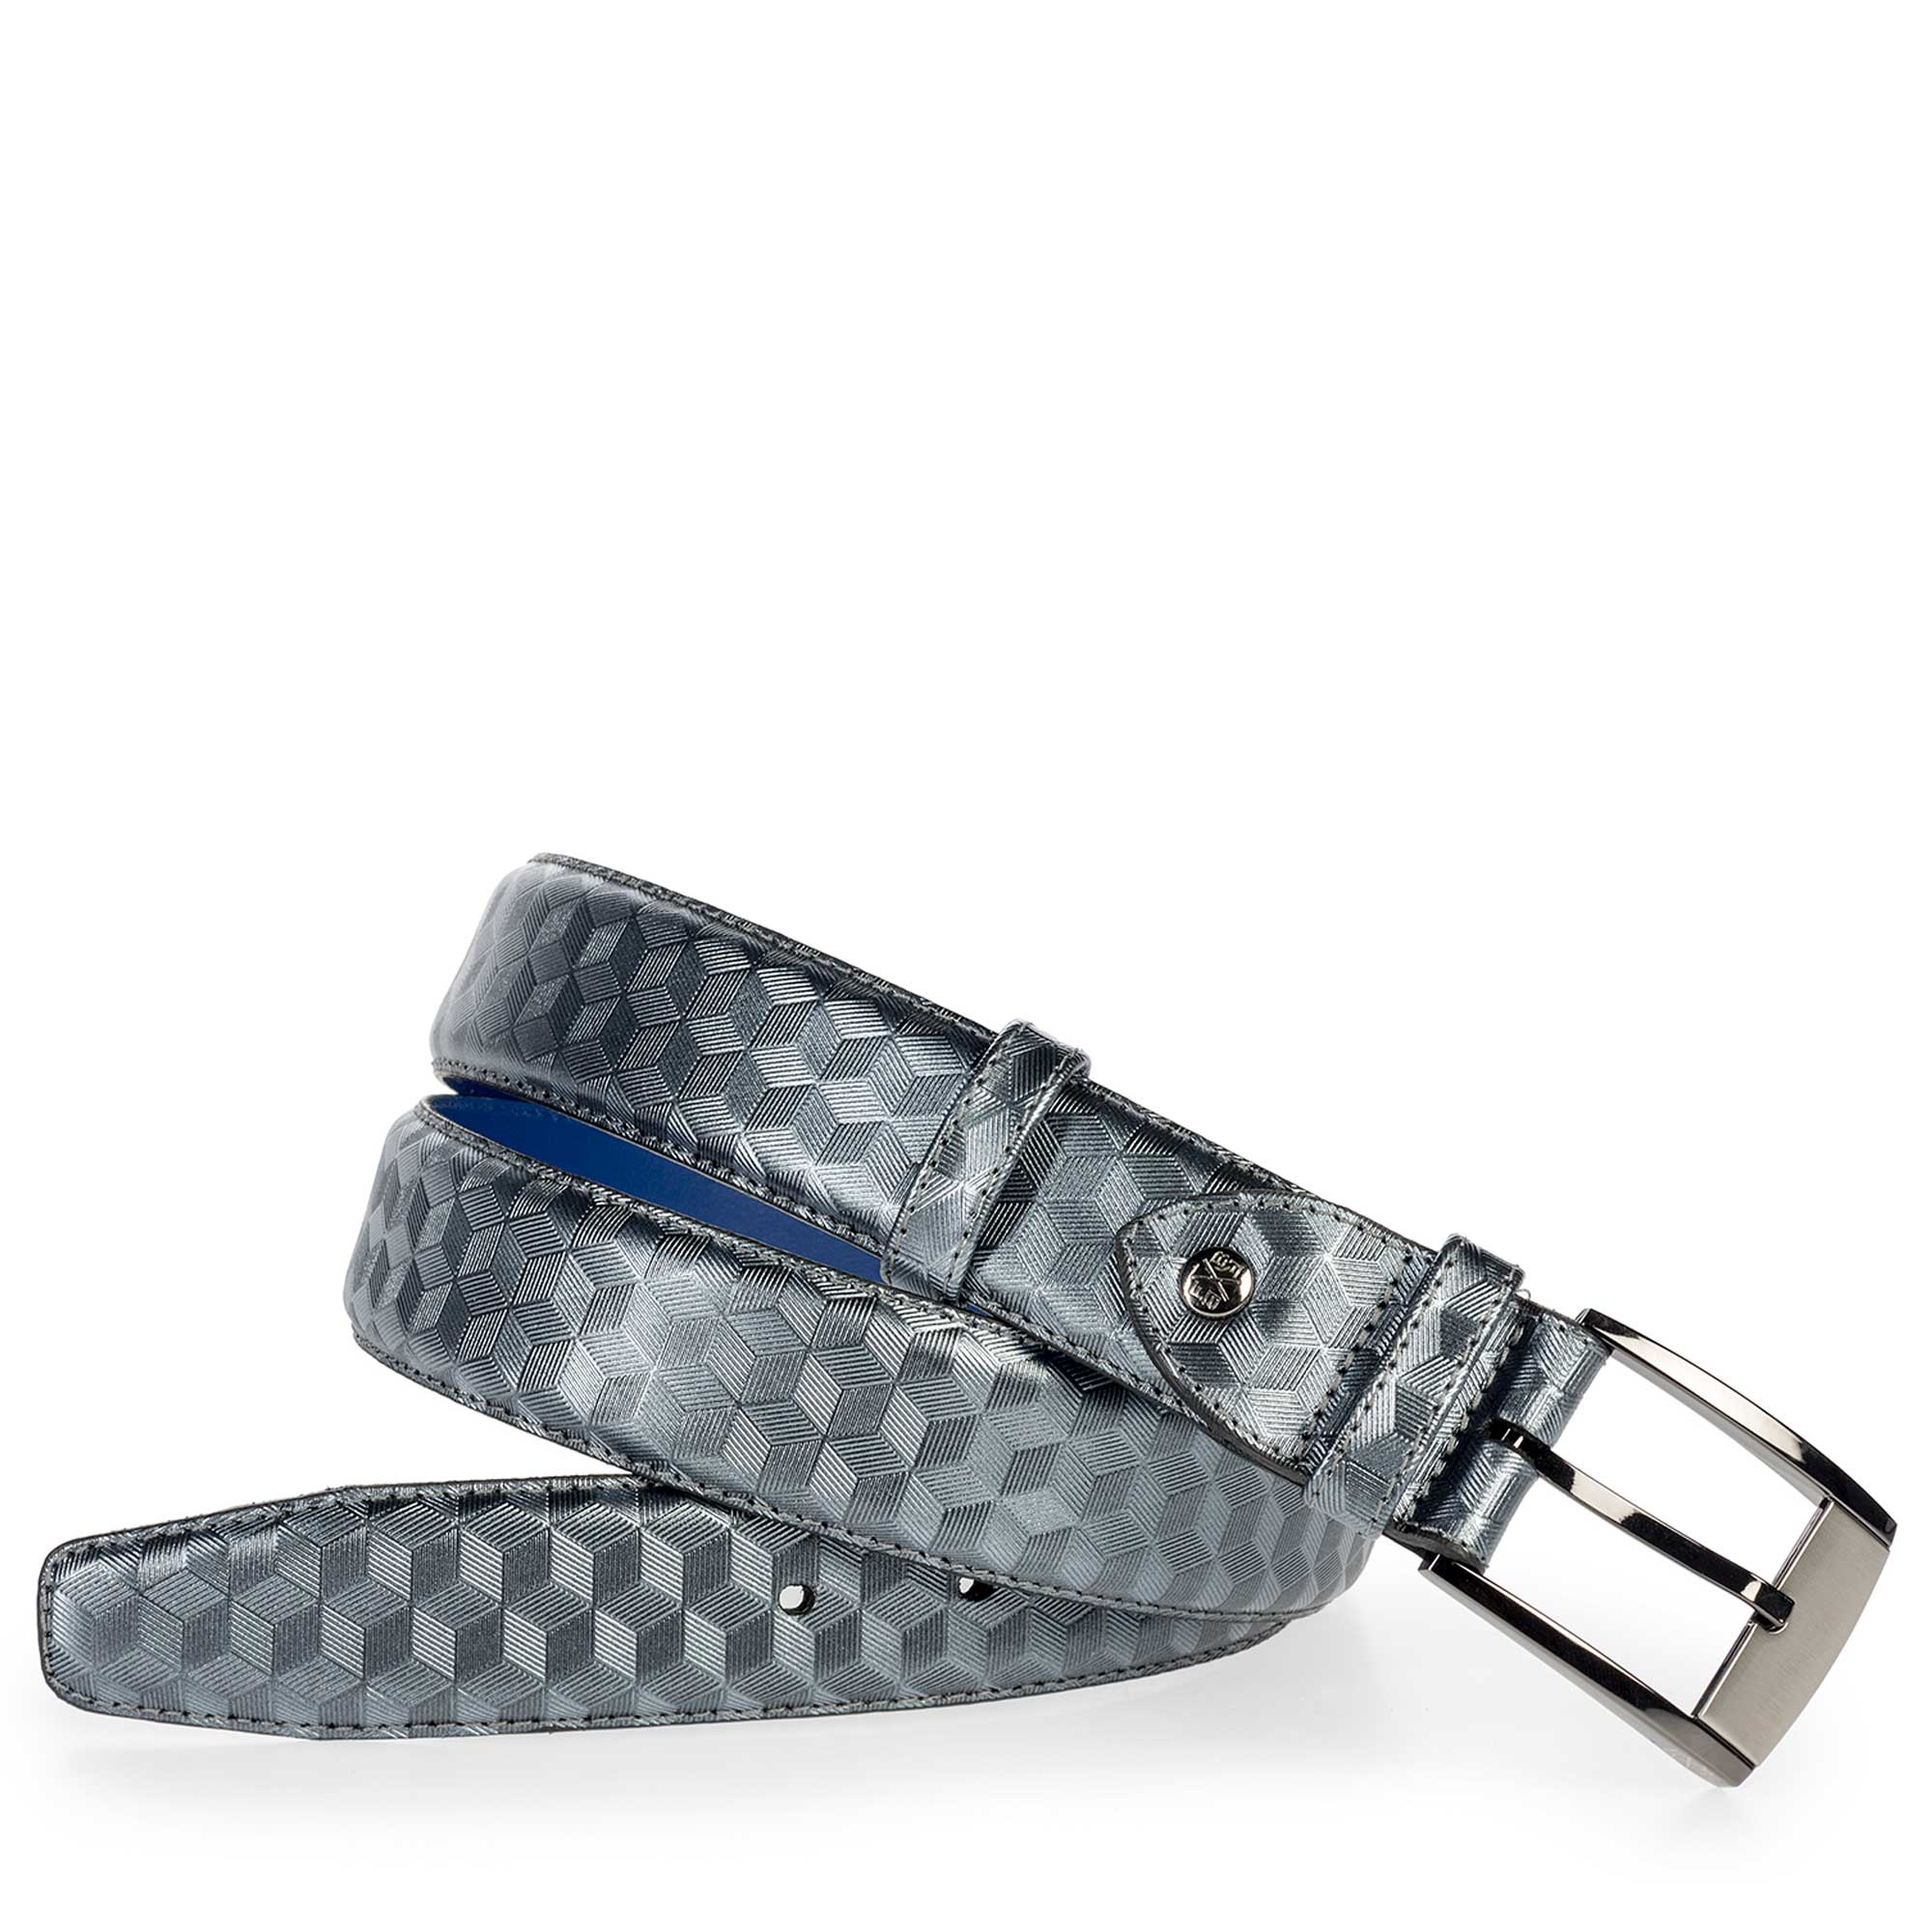 75180/39 - Grey leather belt finished with a hexagon print